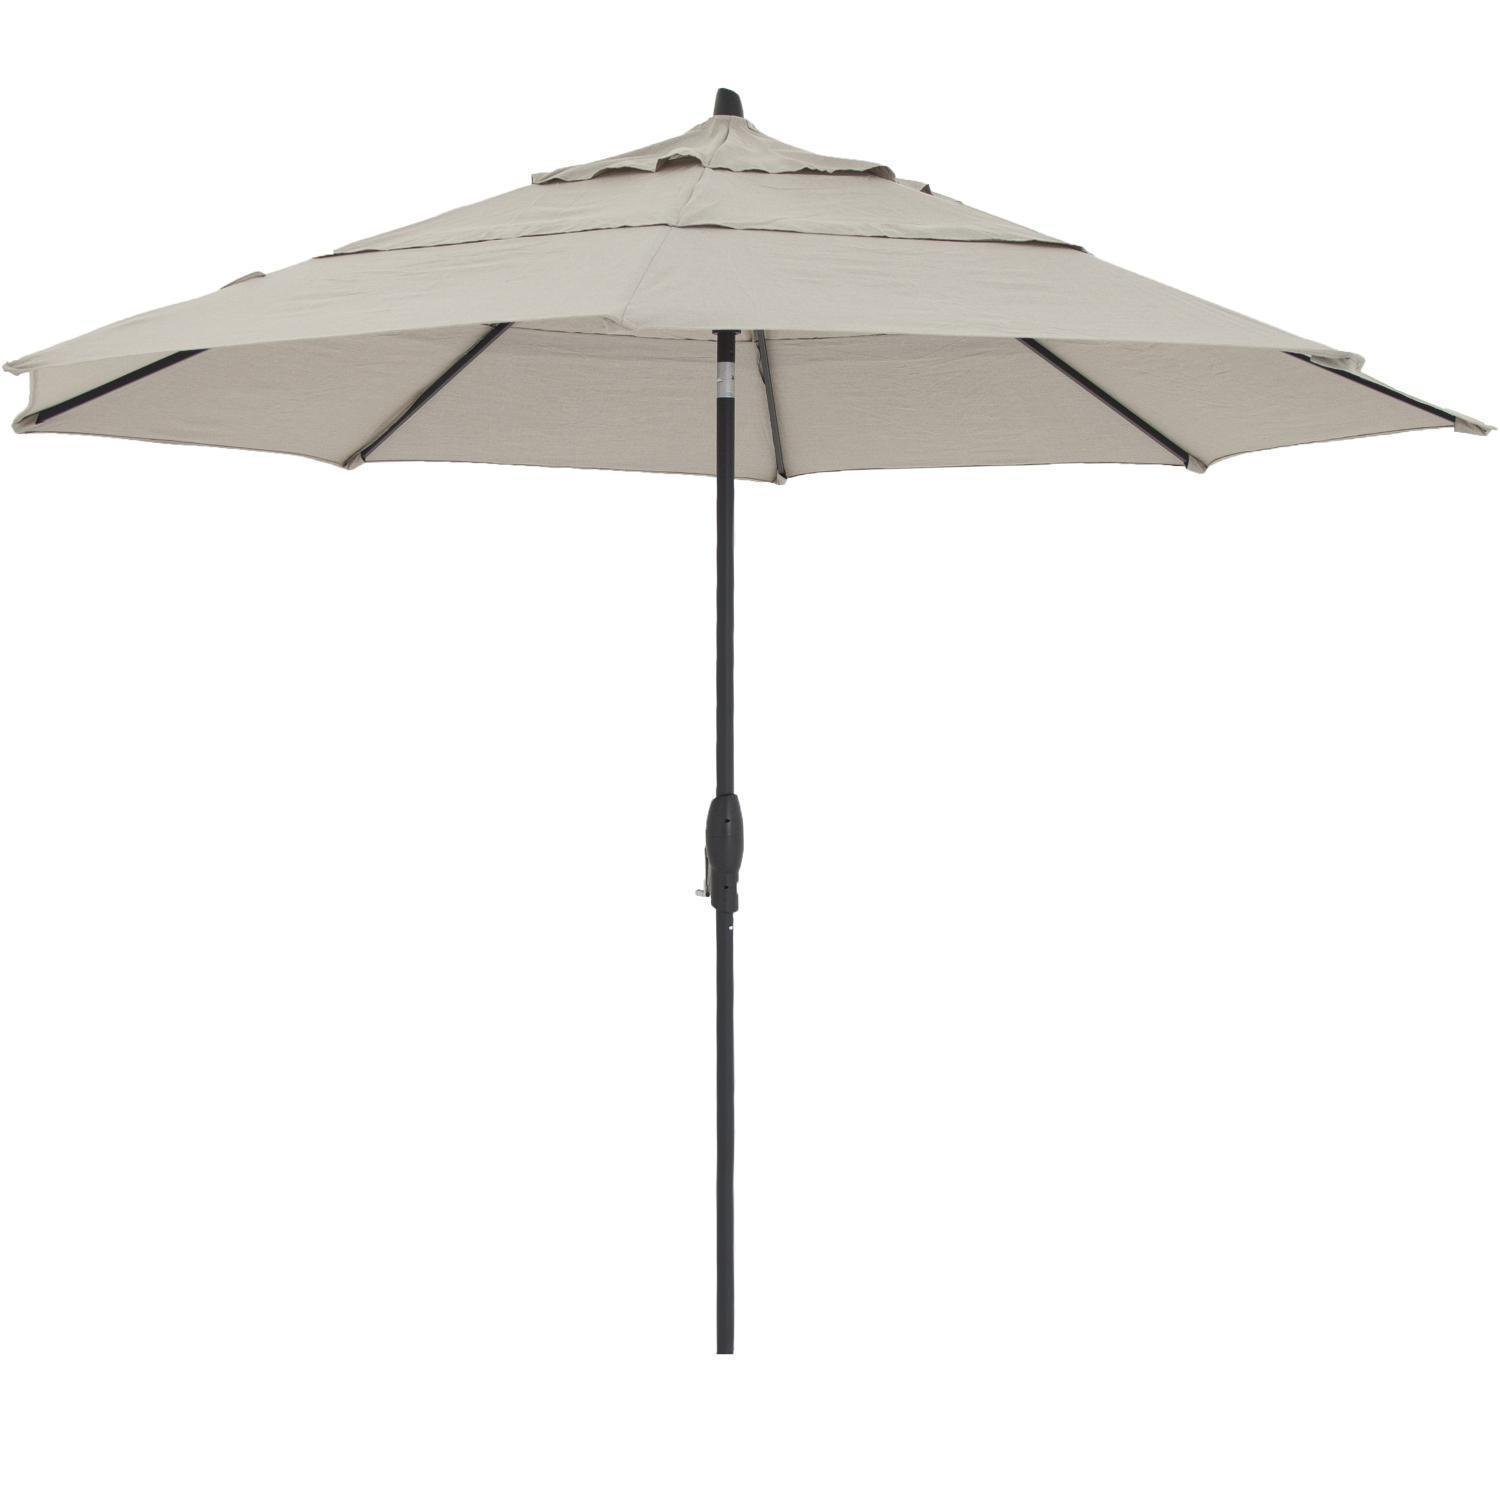 11 Ft Octagonal Aluminum Auto Tilt Patio Umbrella W Crank Lift Double Vent By Lakeview Outdoor Designs Black Frame Sunbrella Cast Ash Canopy In 2019